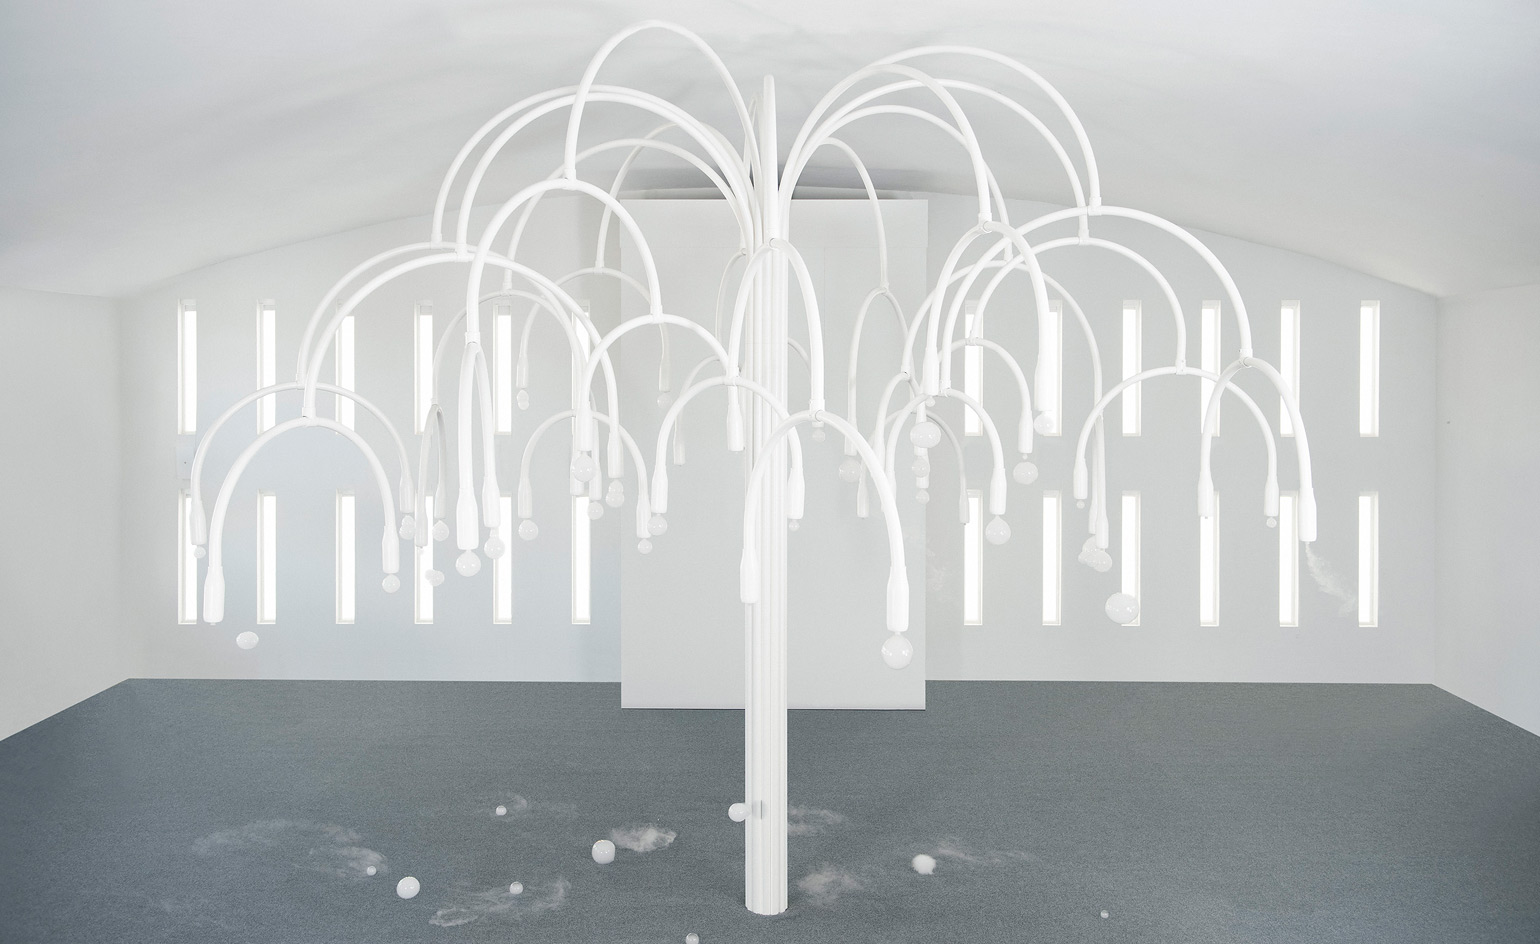 COS and Studio Swine have recreated their mesmerising Salone del Mobile installation inside Miami's art deco Temple House. On the opposite end of the spectrum to the darkened space that hosted the Italian version, the US iteration has been reimagined in white COS minimalism, overlooked by tropical palms.